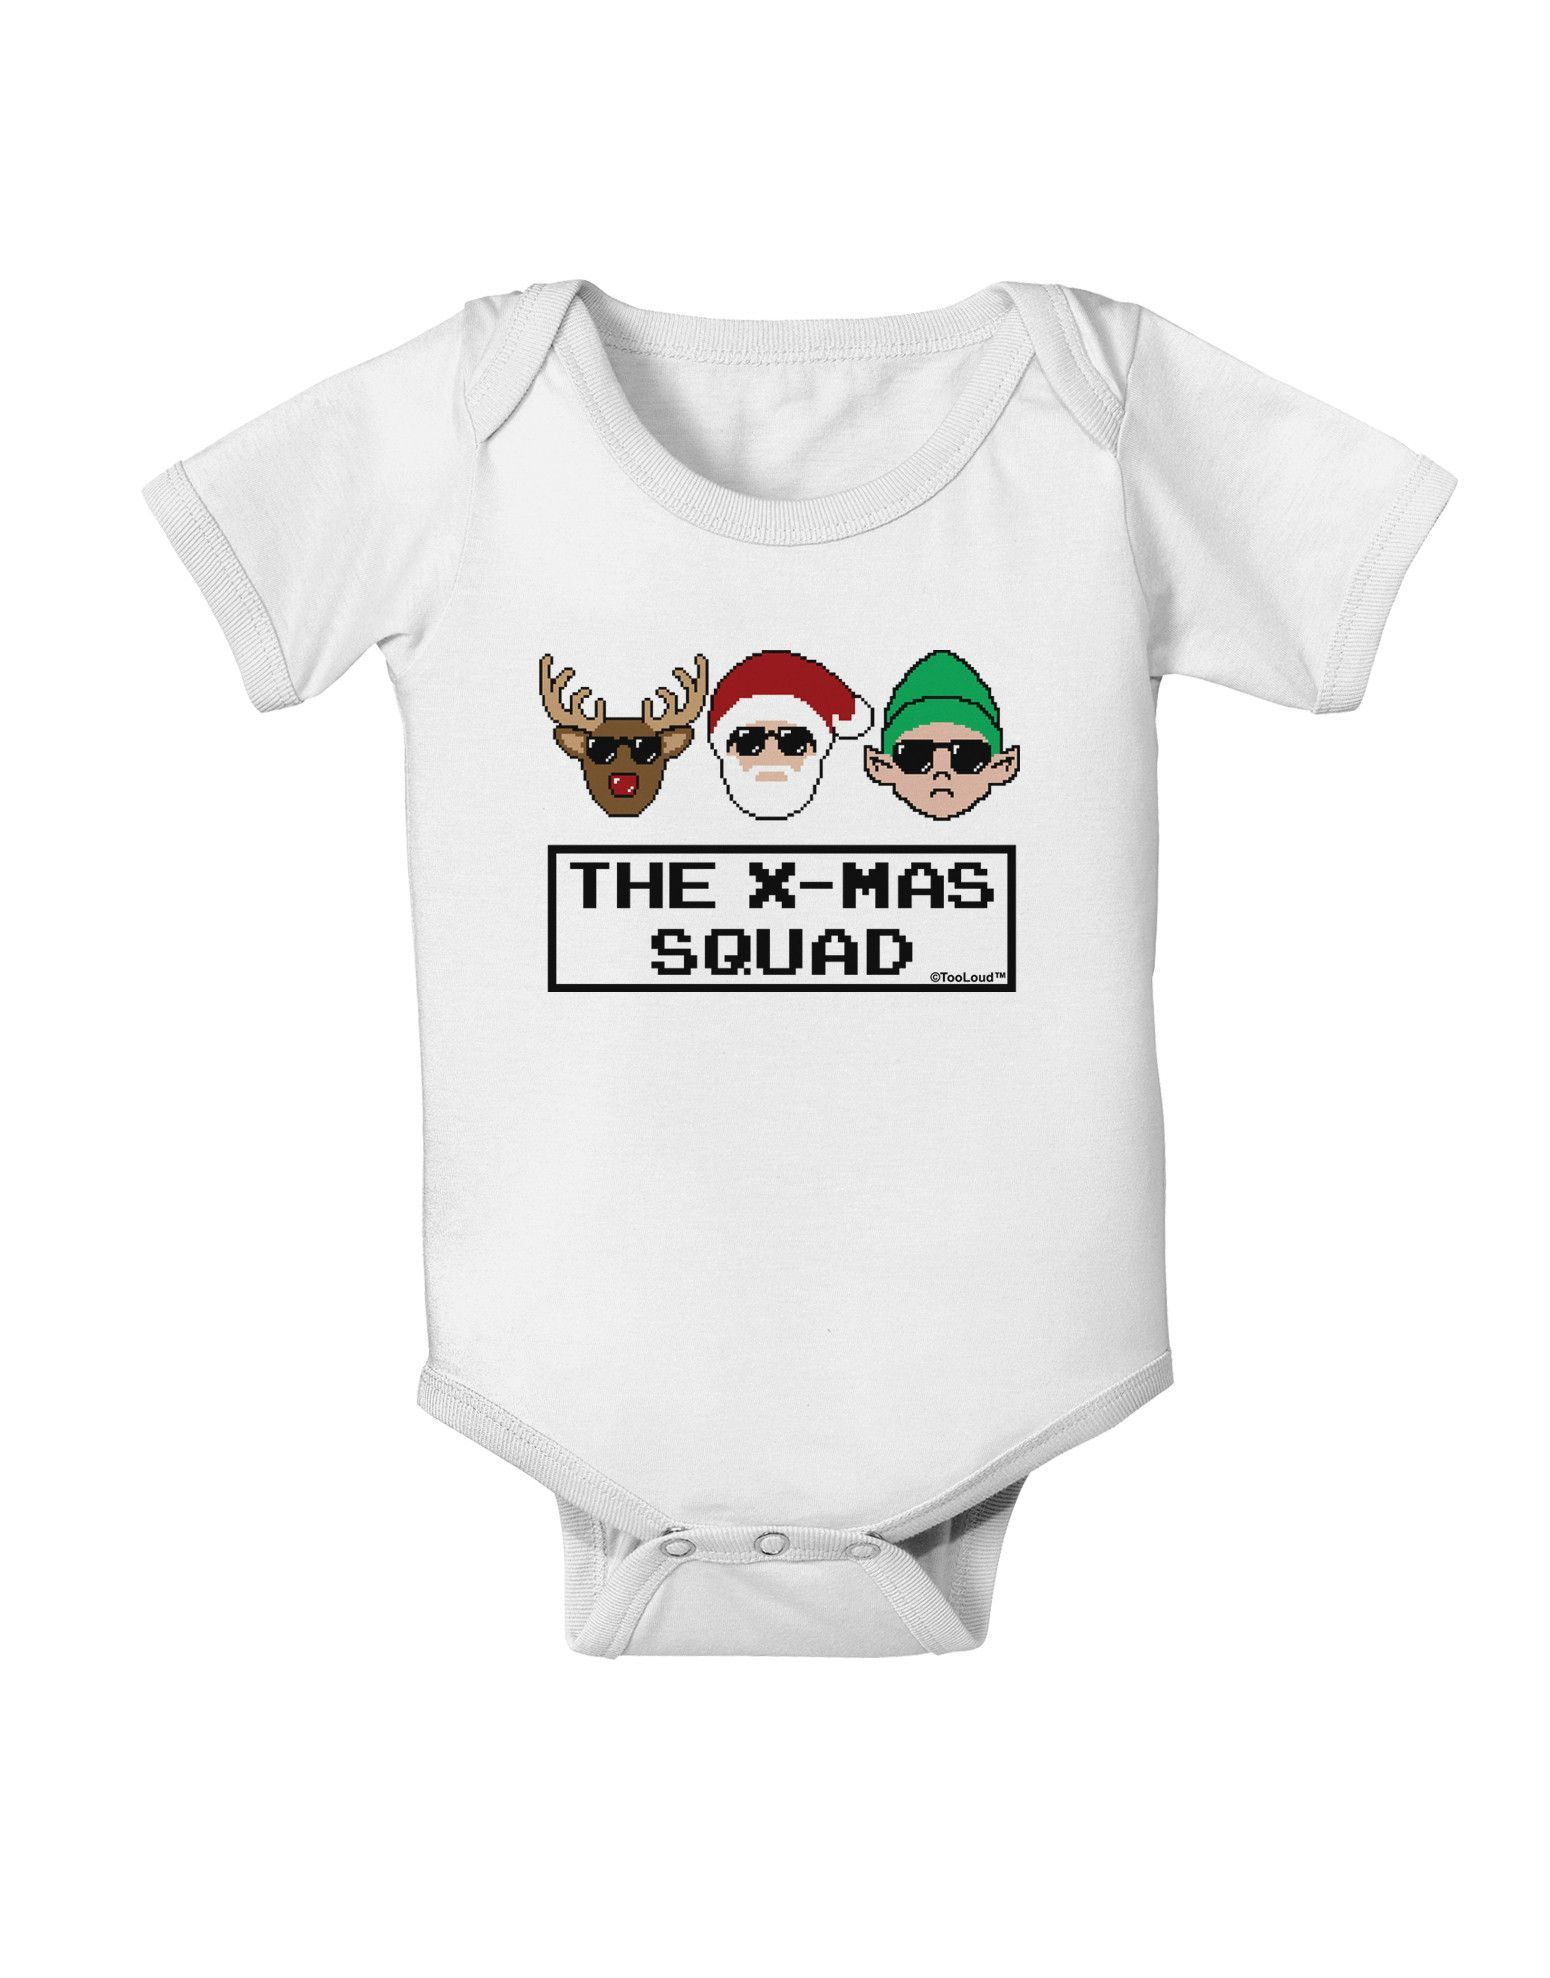 645eb1722933 The X-mas Squad Text Baby Romper Bodysuit